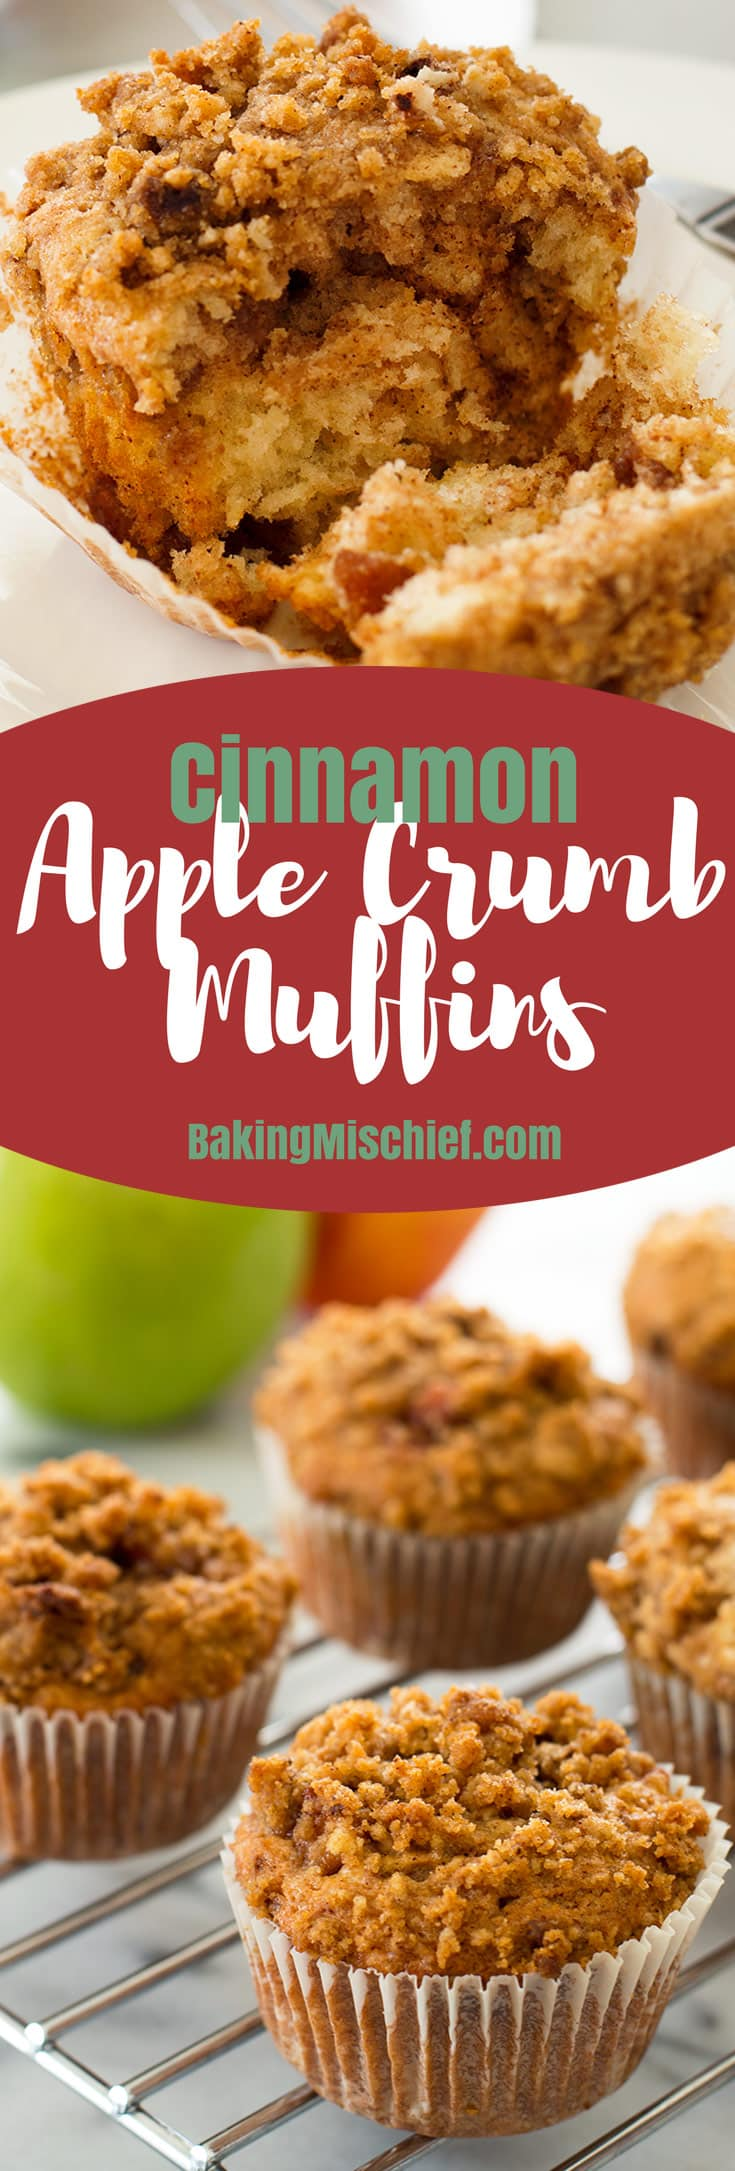 Apple Cinnamon Crumb Muffins Recipe — Dishmaps